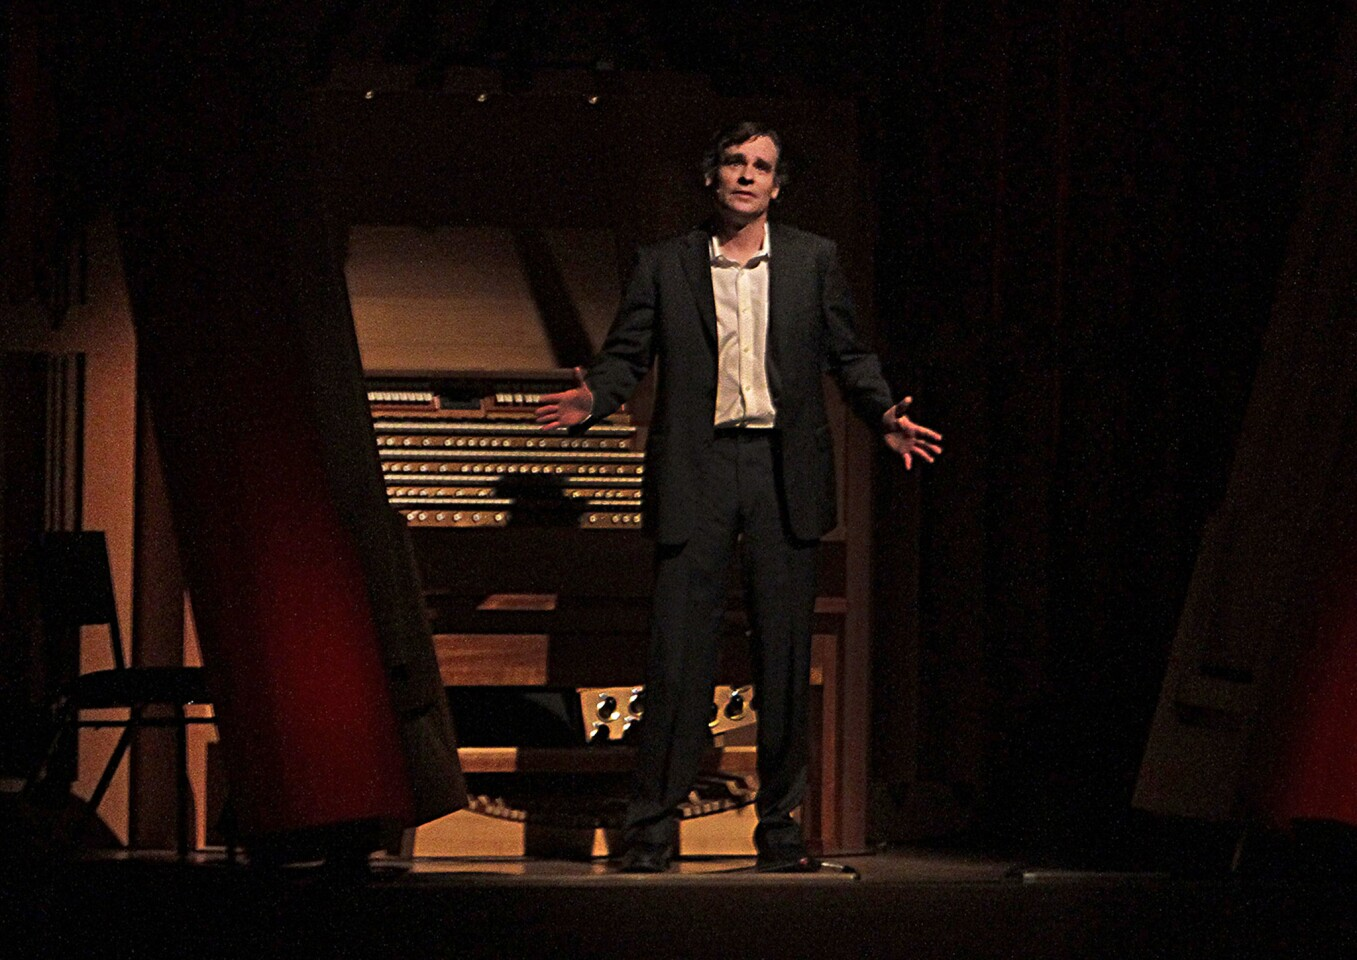 """Robert Sean Leonard performing a scene from """"Hamlet."""" Gustavo Dudamel conducted the Simon Bolivar Symphony Orchestra of Venezuela in Tchaikovsky's overtures of Shakespearean themes at Walt Disney Concert Hall on Wednesday."""